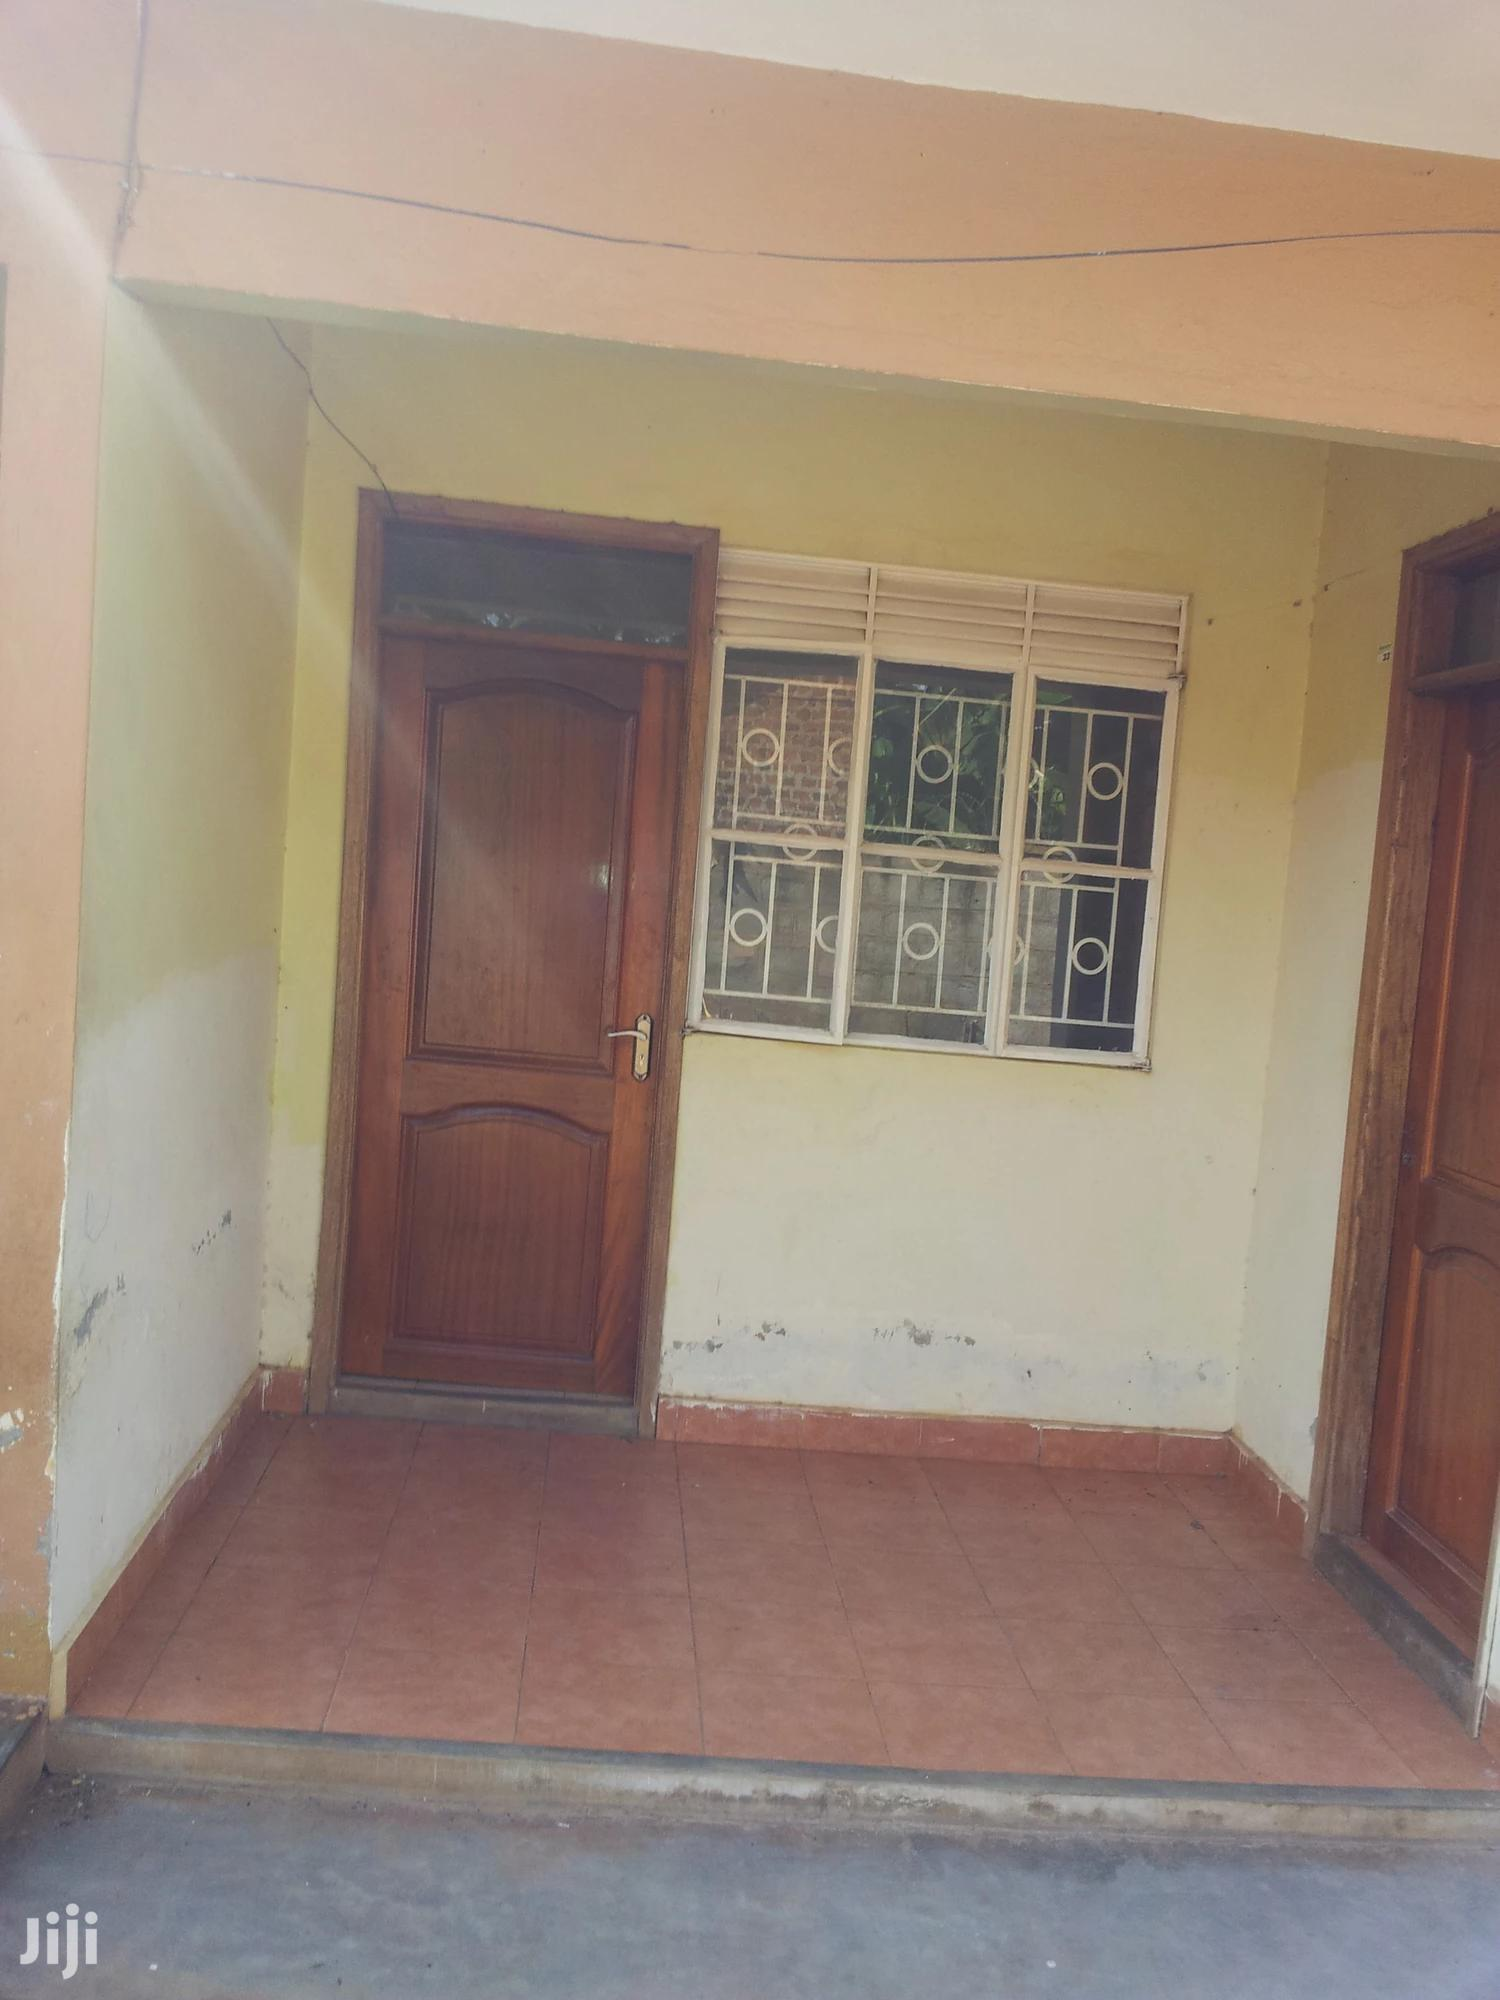 House For Rent At Komamboga